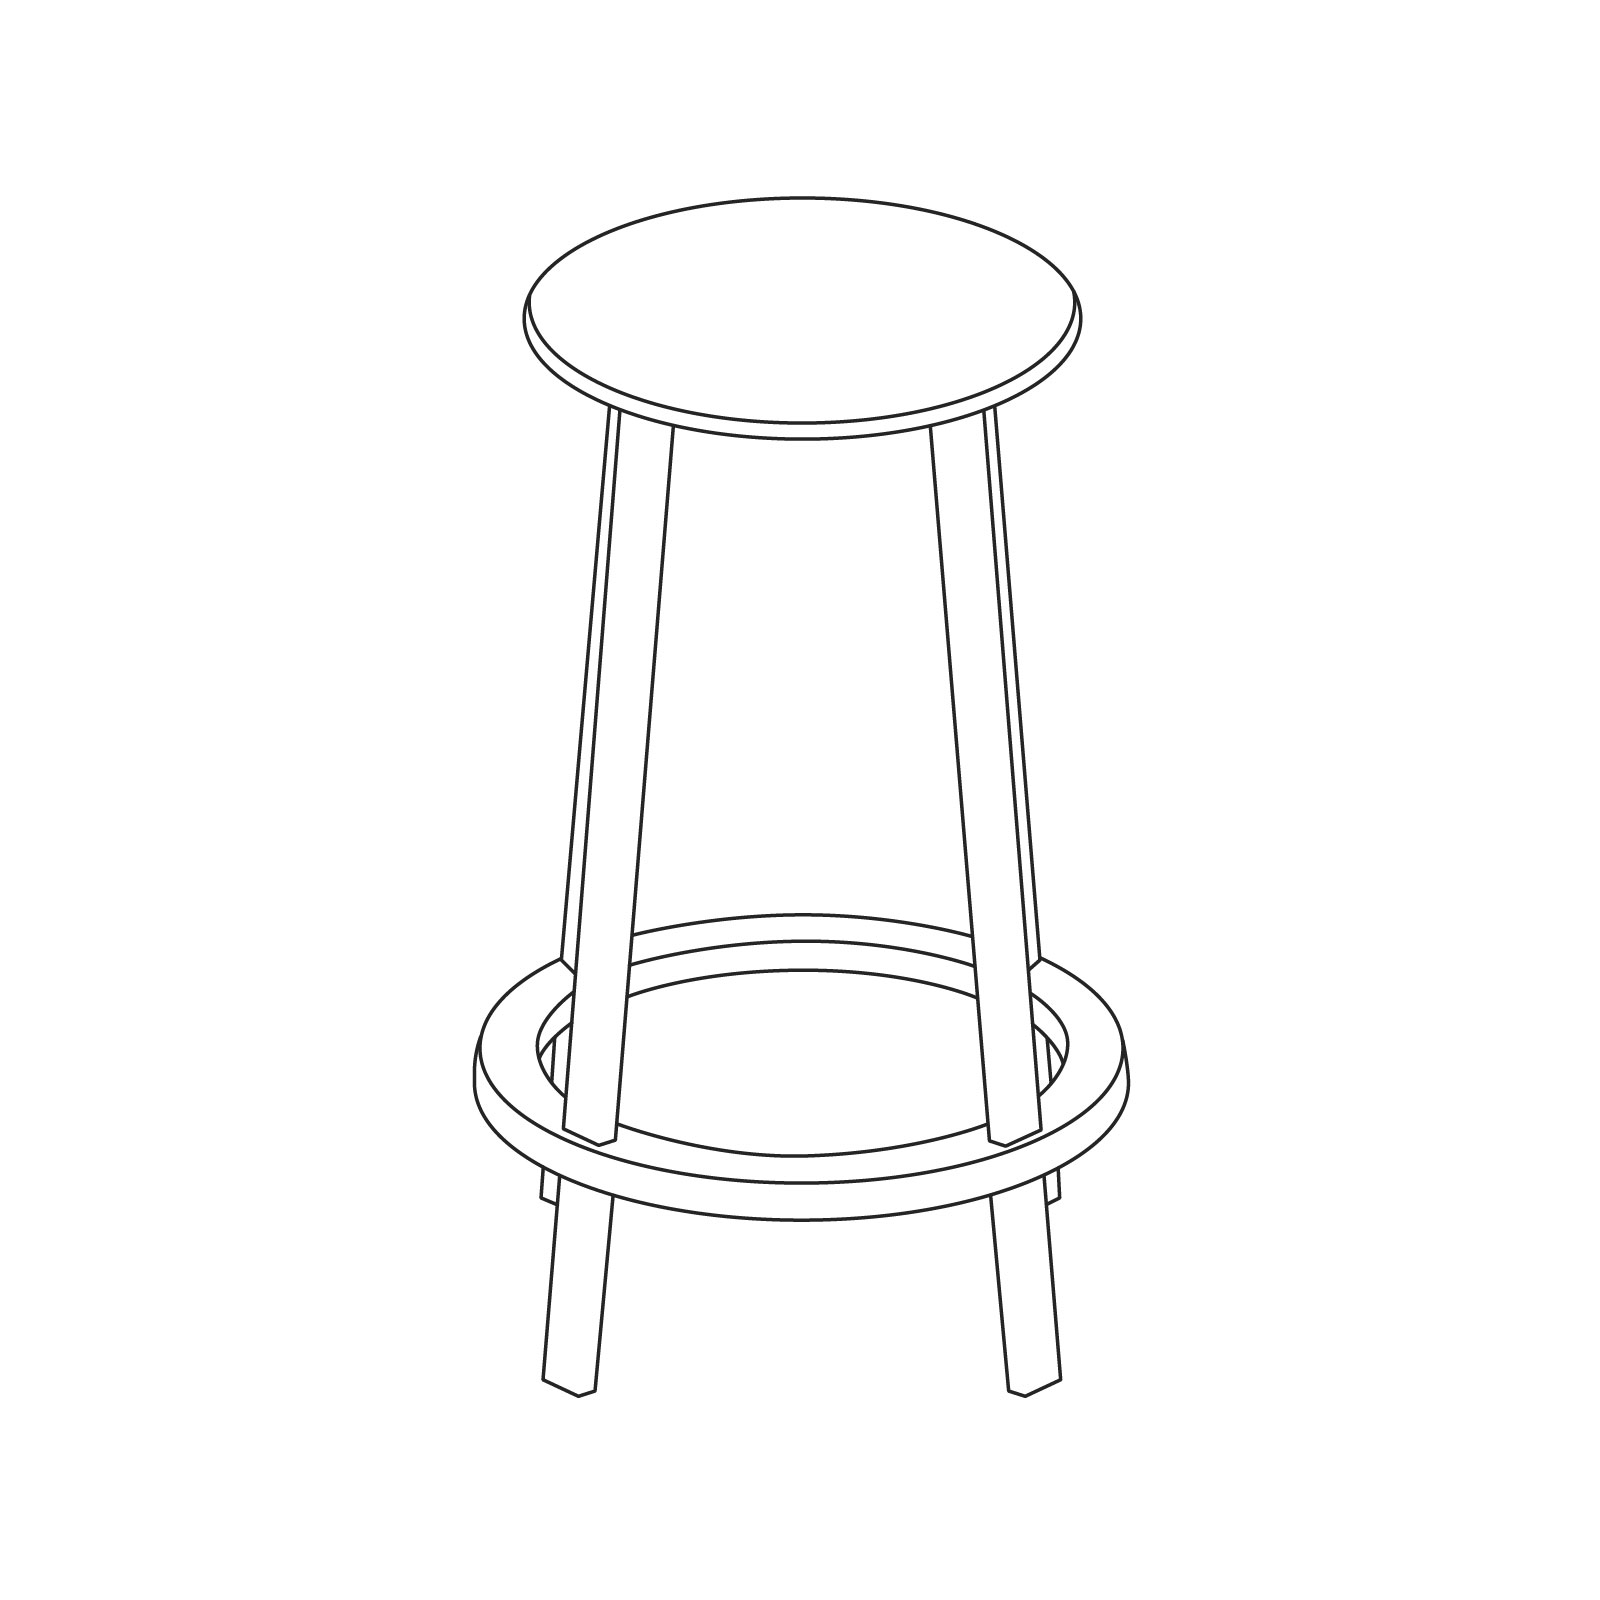 A line drawing of Revolver Stool–Counter Height.